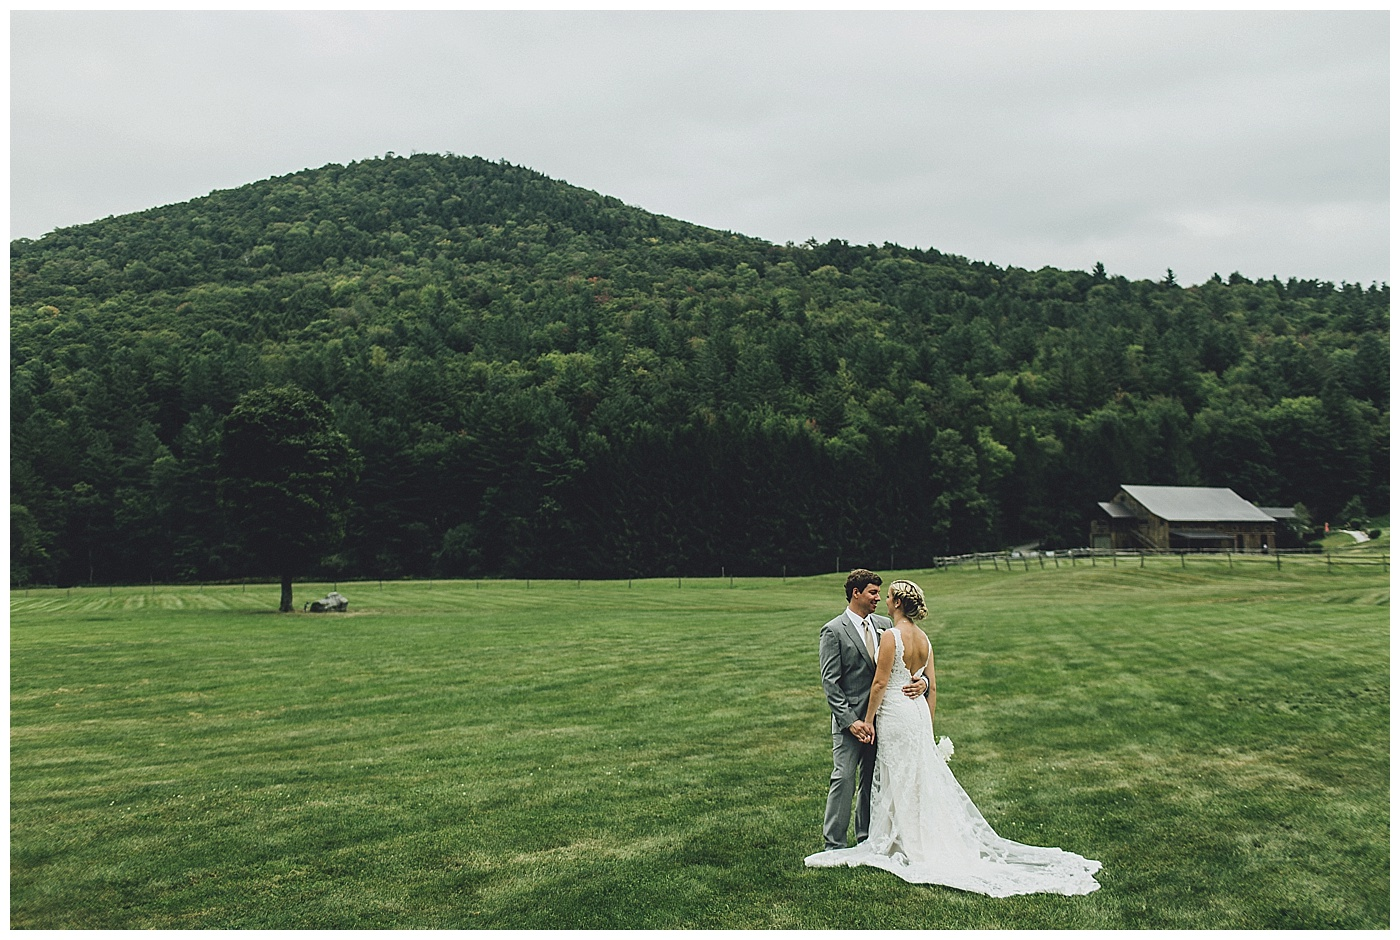 The Bride & Groom steal a quiet moment in the Riverside Farm wedding meadow.